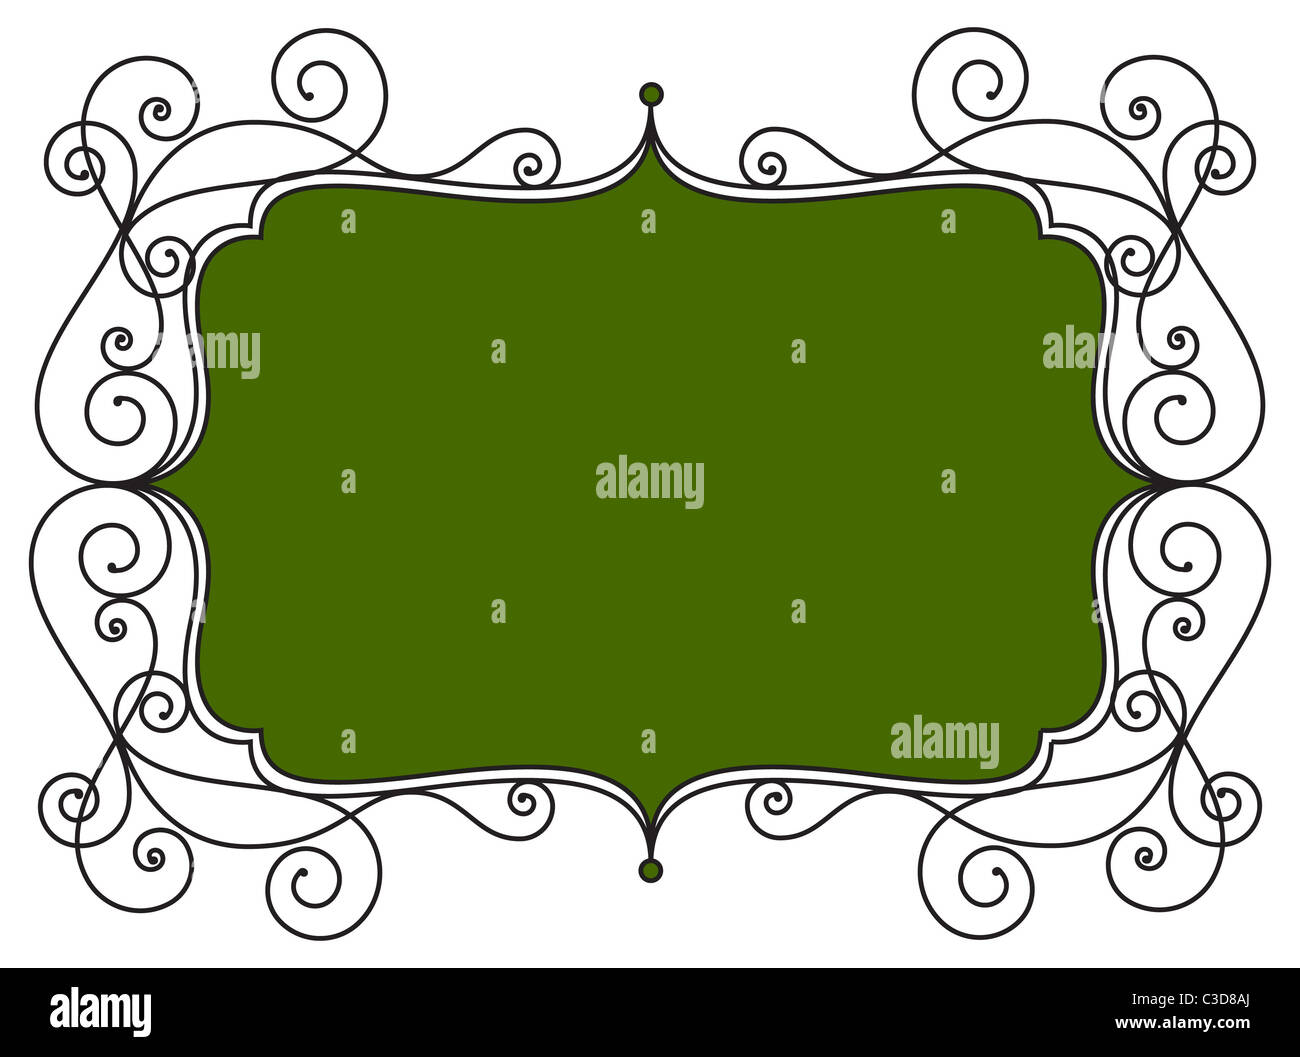 Vintage frame illustration - Exclusive to Alamy only - Stock Image